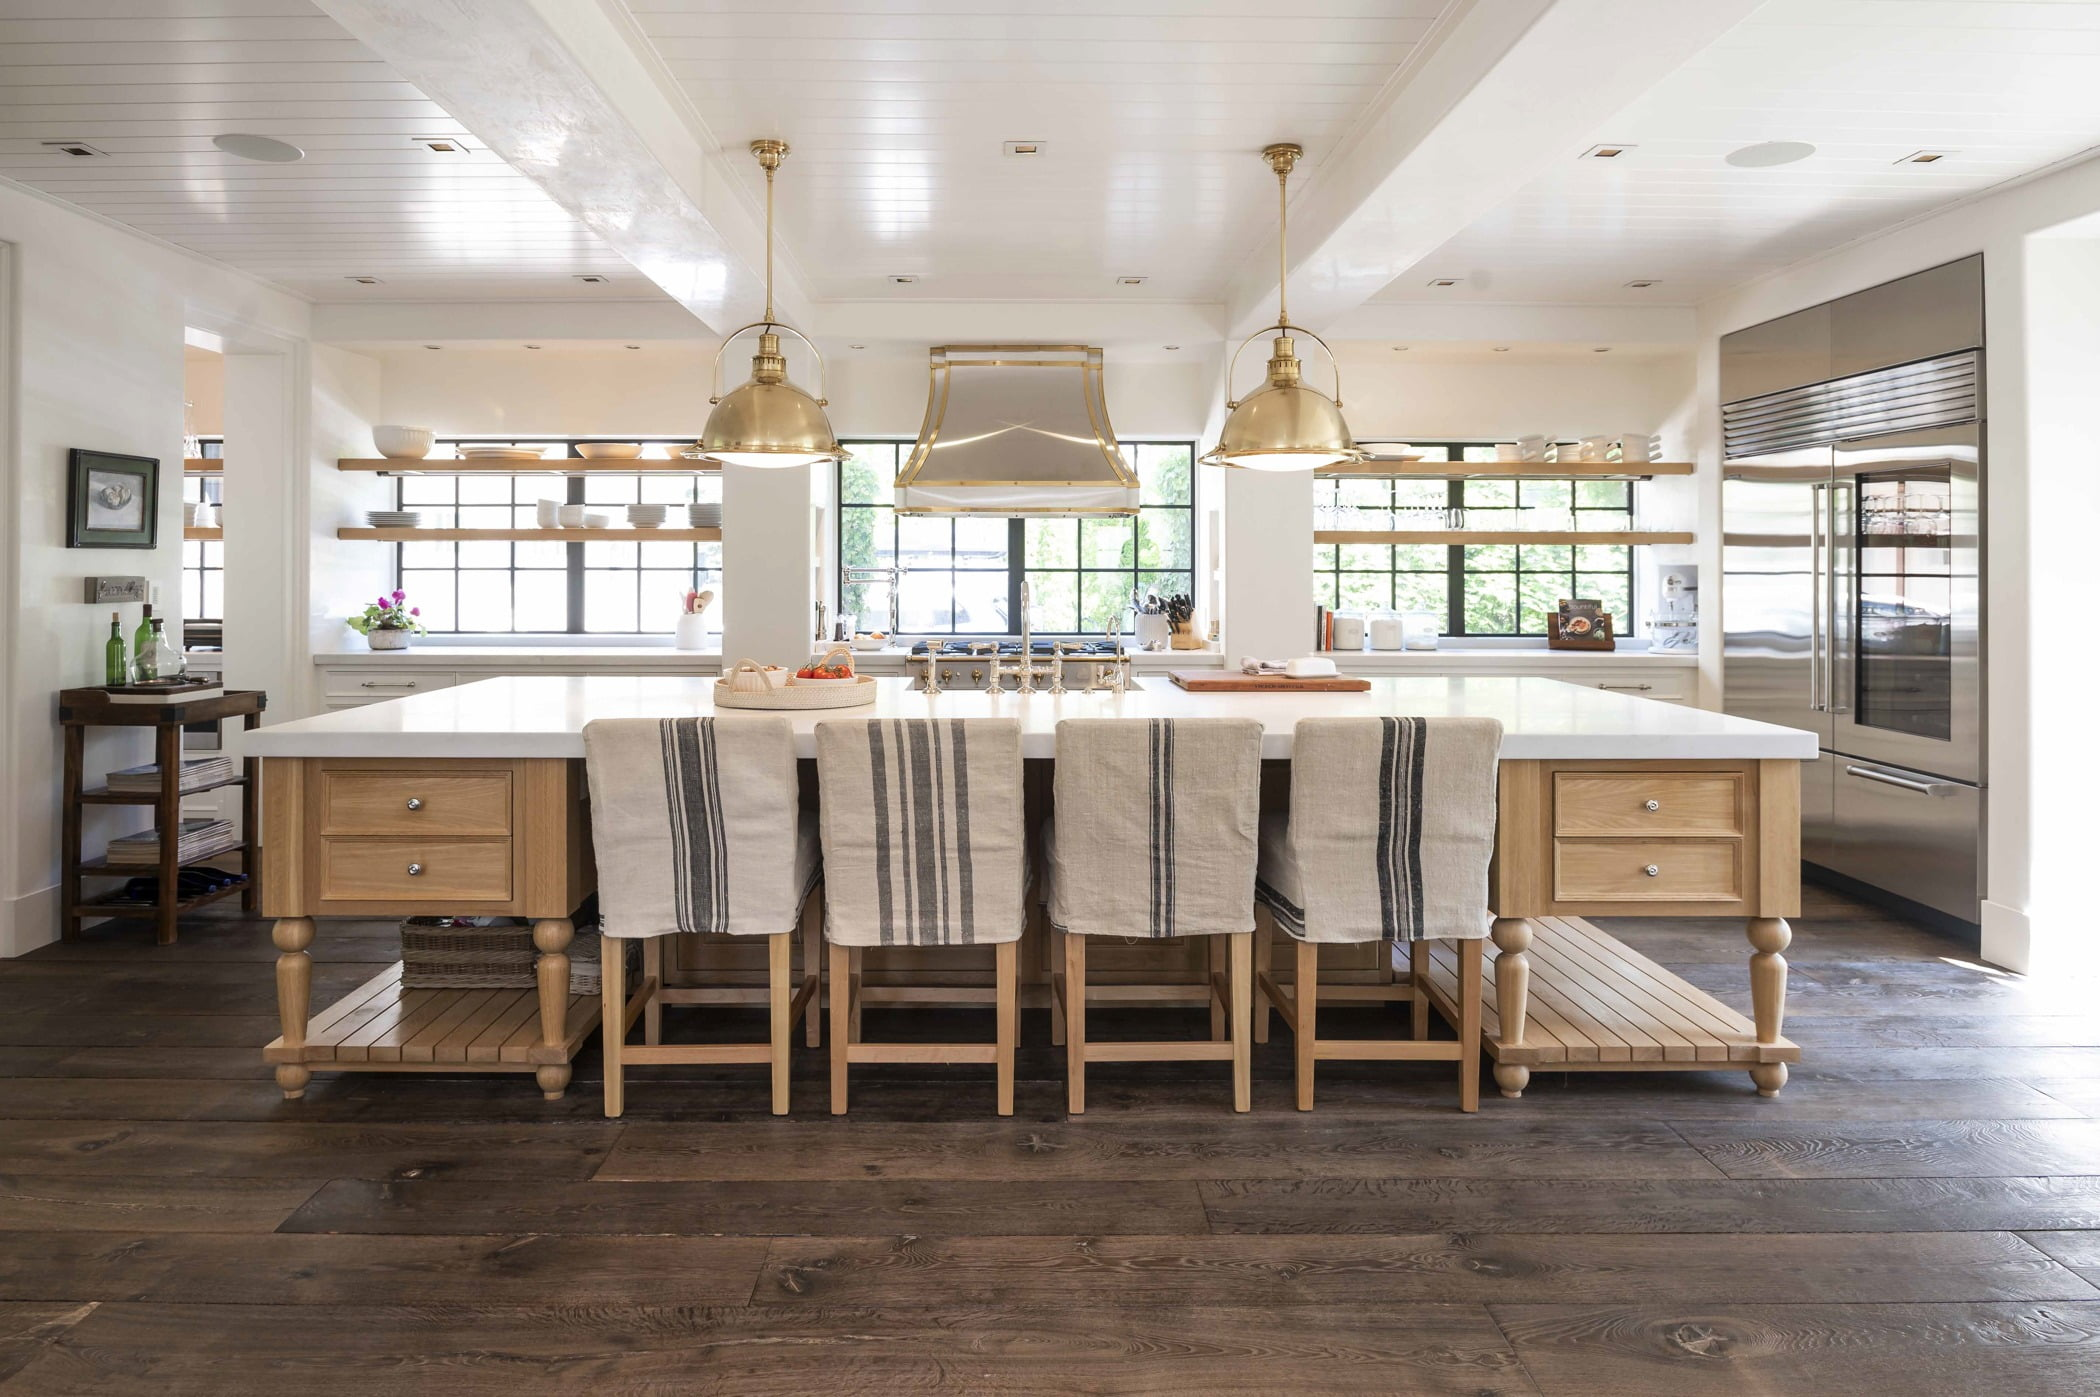 Transitional kitchen island with light wood cabinetry, white marble countertops and dark hardwood flooring